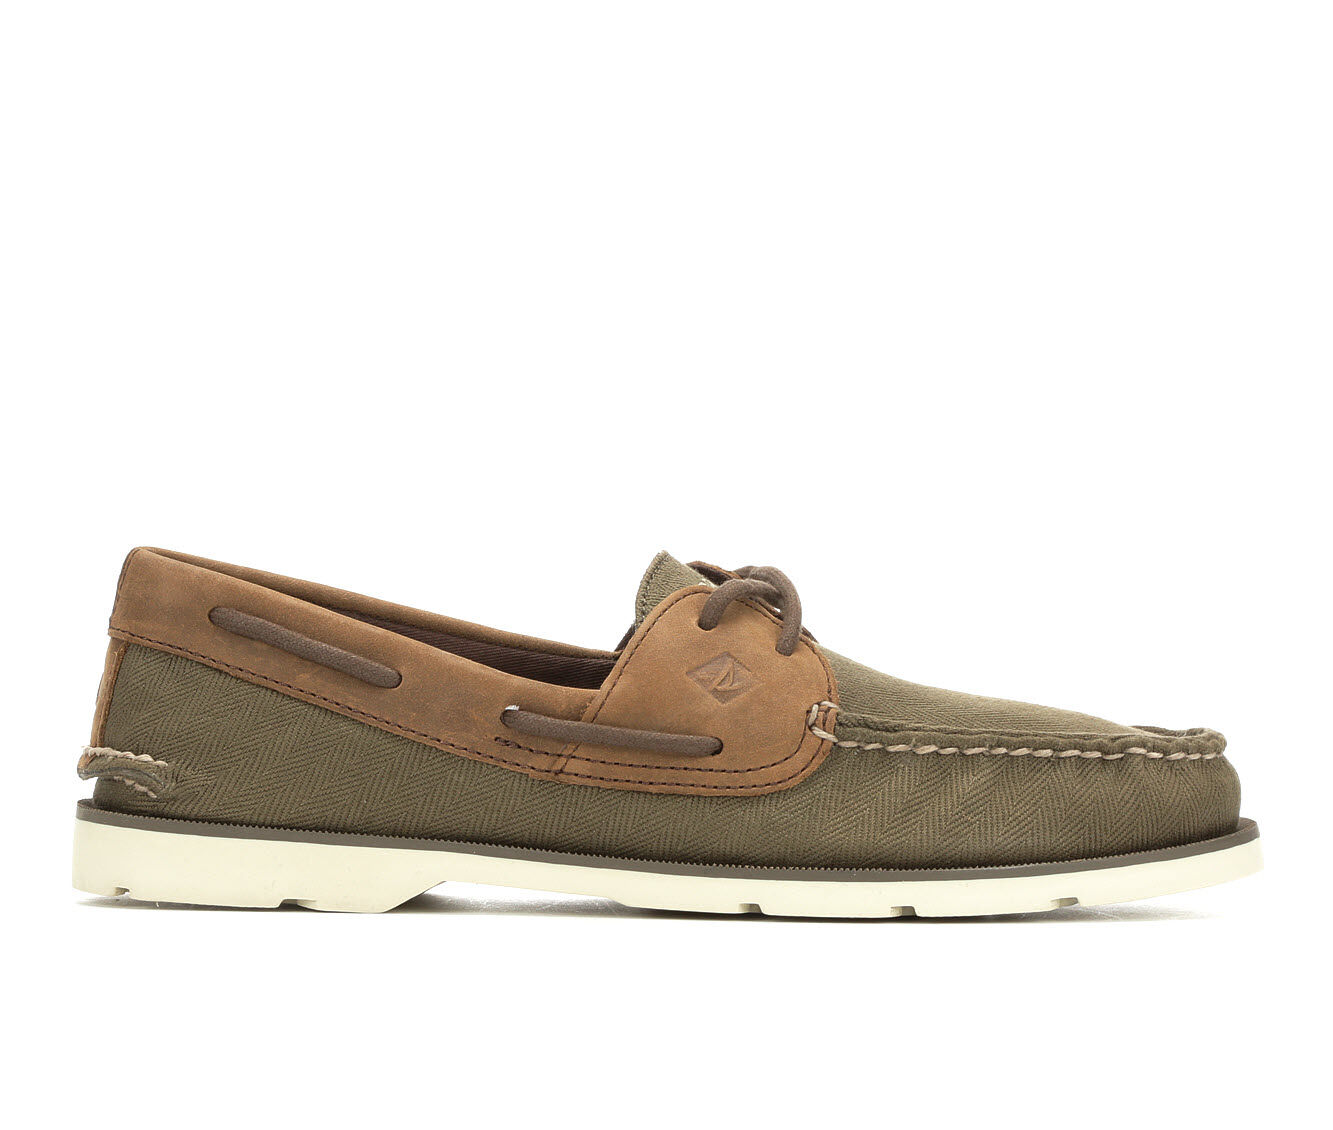 new fashion style Men's Sperry Leeward 2 Eye Boat Shoes Olive/Brown